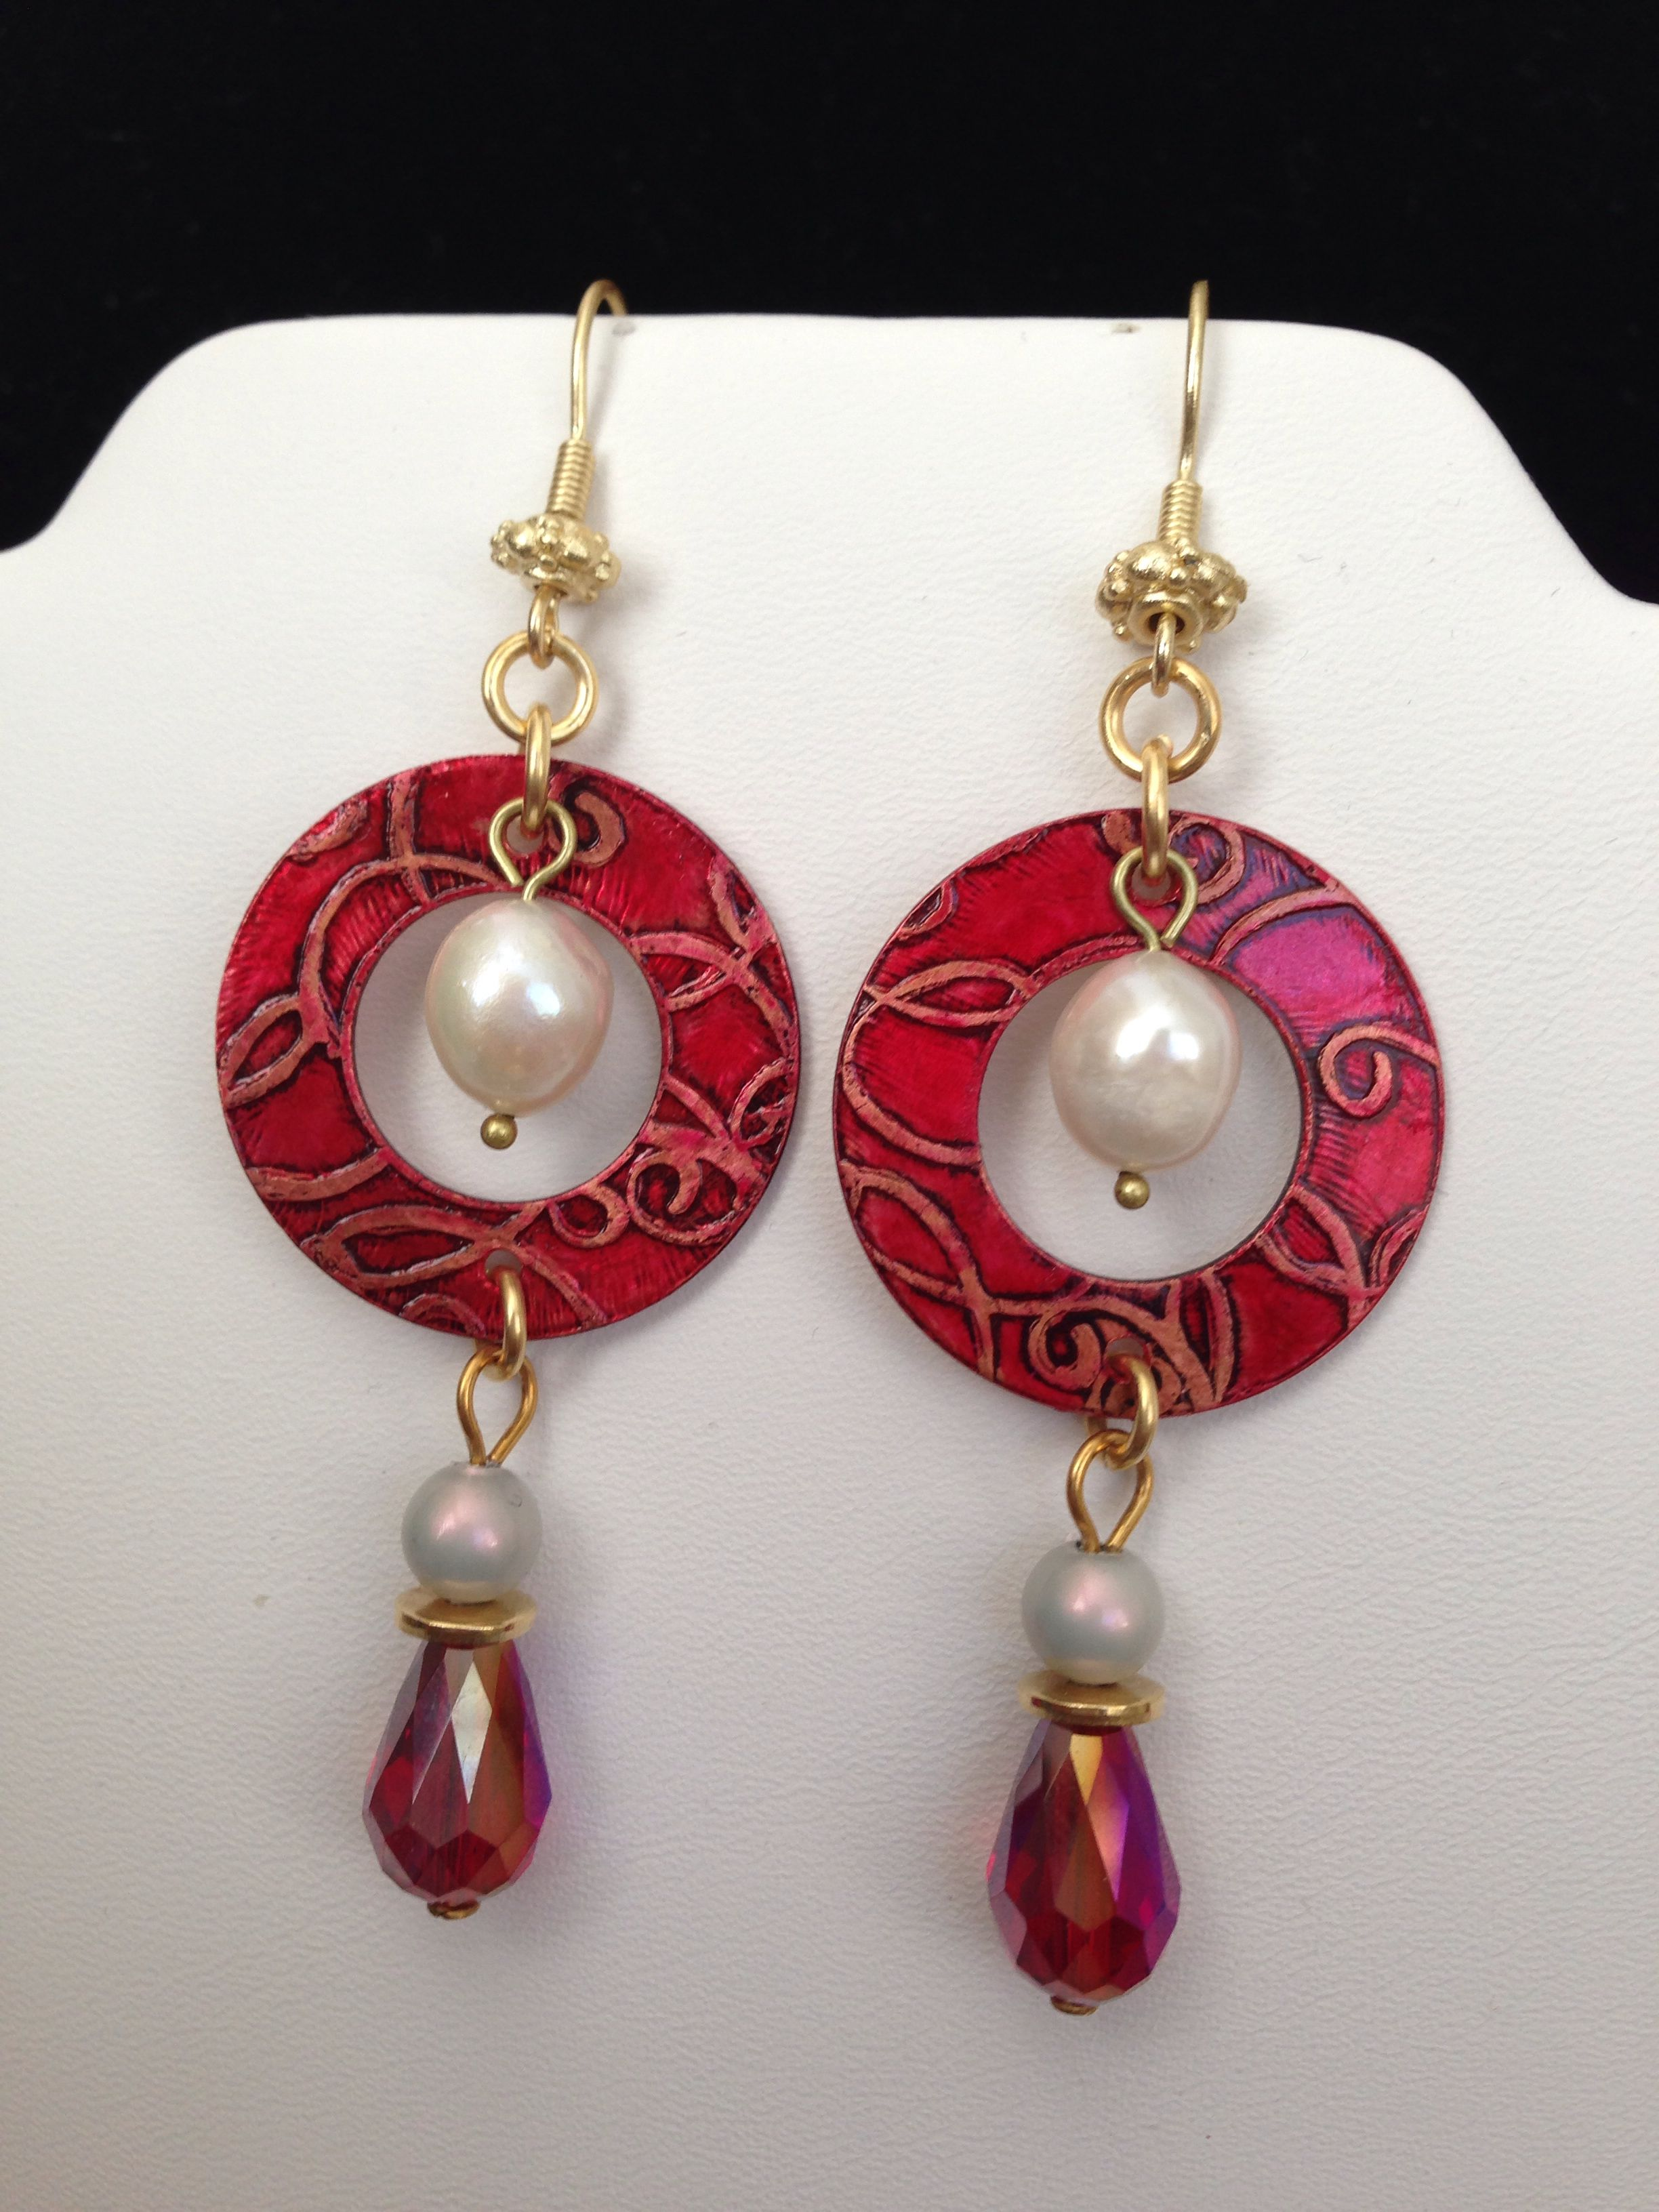 Sunday Earring Challenge. Etched copper washers painted with alcohol ink, freshwater pearls and Czech teardrop crystals.  Design by Renie Hoffman